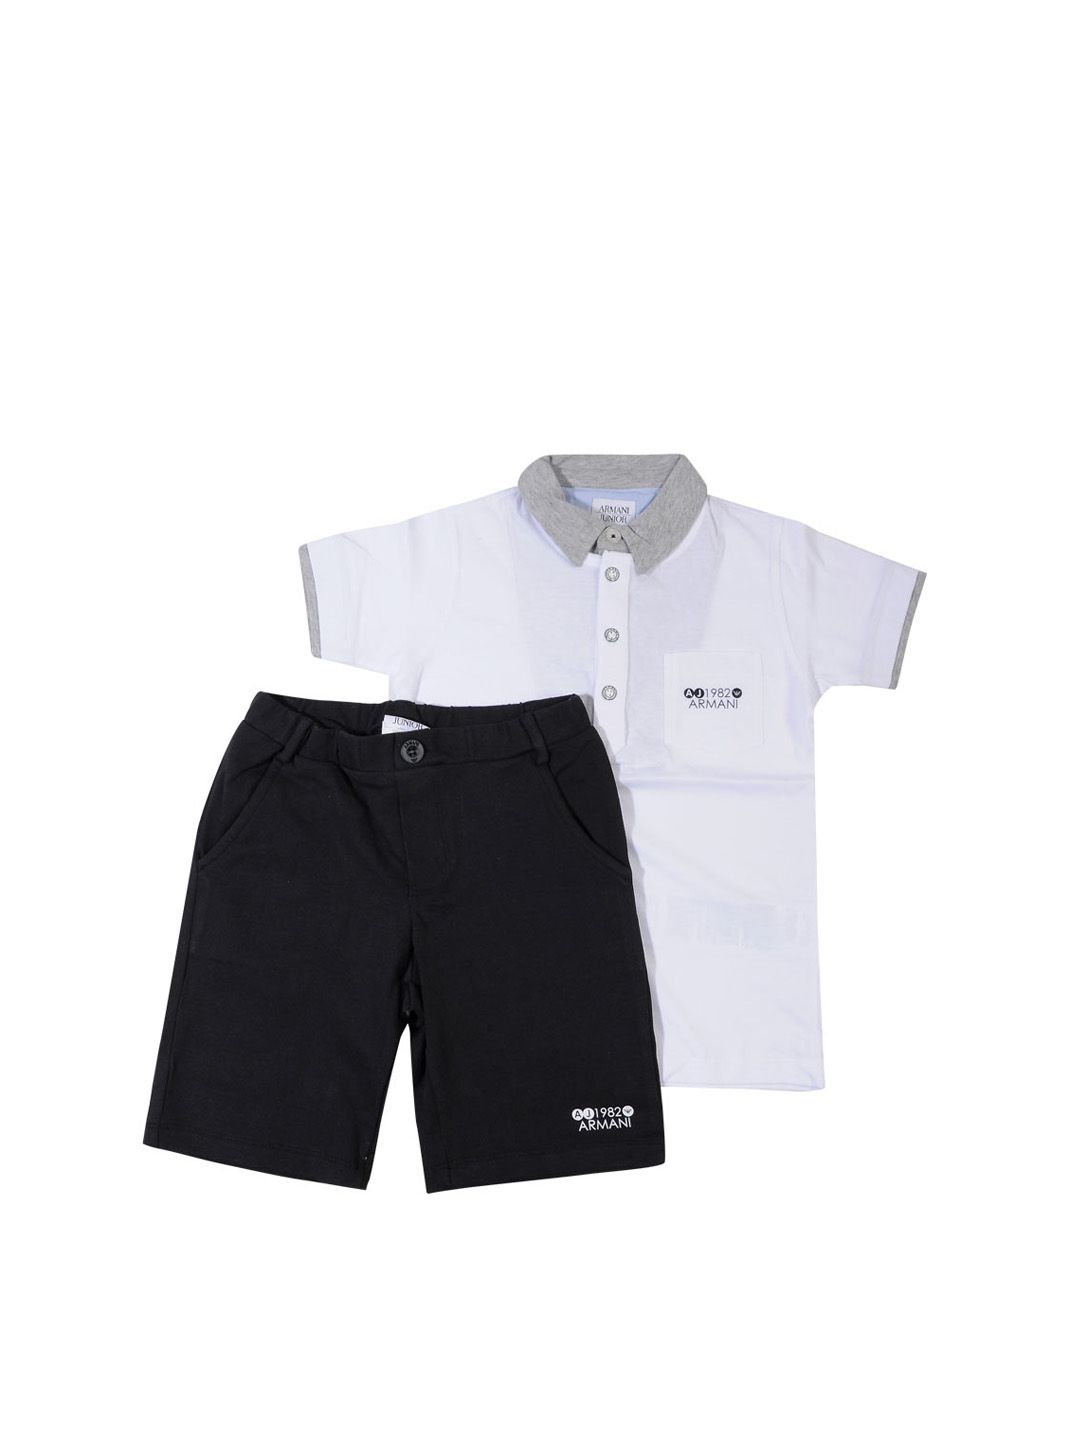 White Top And Black Shorts Set - On Sale - Mistile